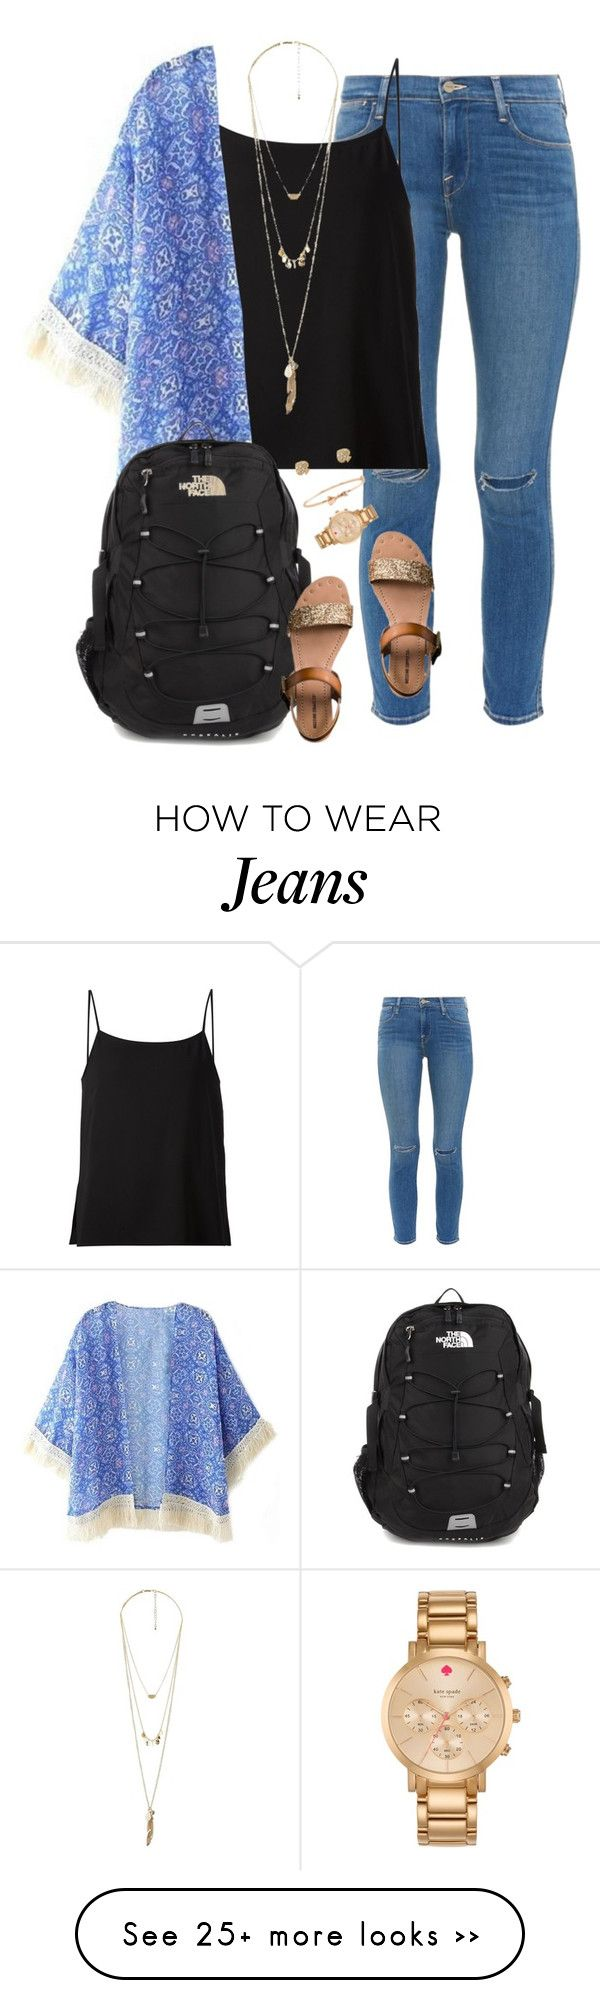 """what I wore to school today!✌️"" by kaley-ii on Polyvore featuring Frame Denim, Helmut Lang, Charlotte Russe, The North Face, Mossimo Supply Co. and Kate Spade"